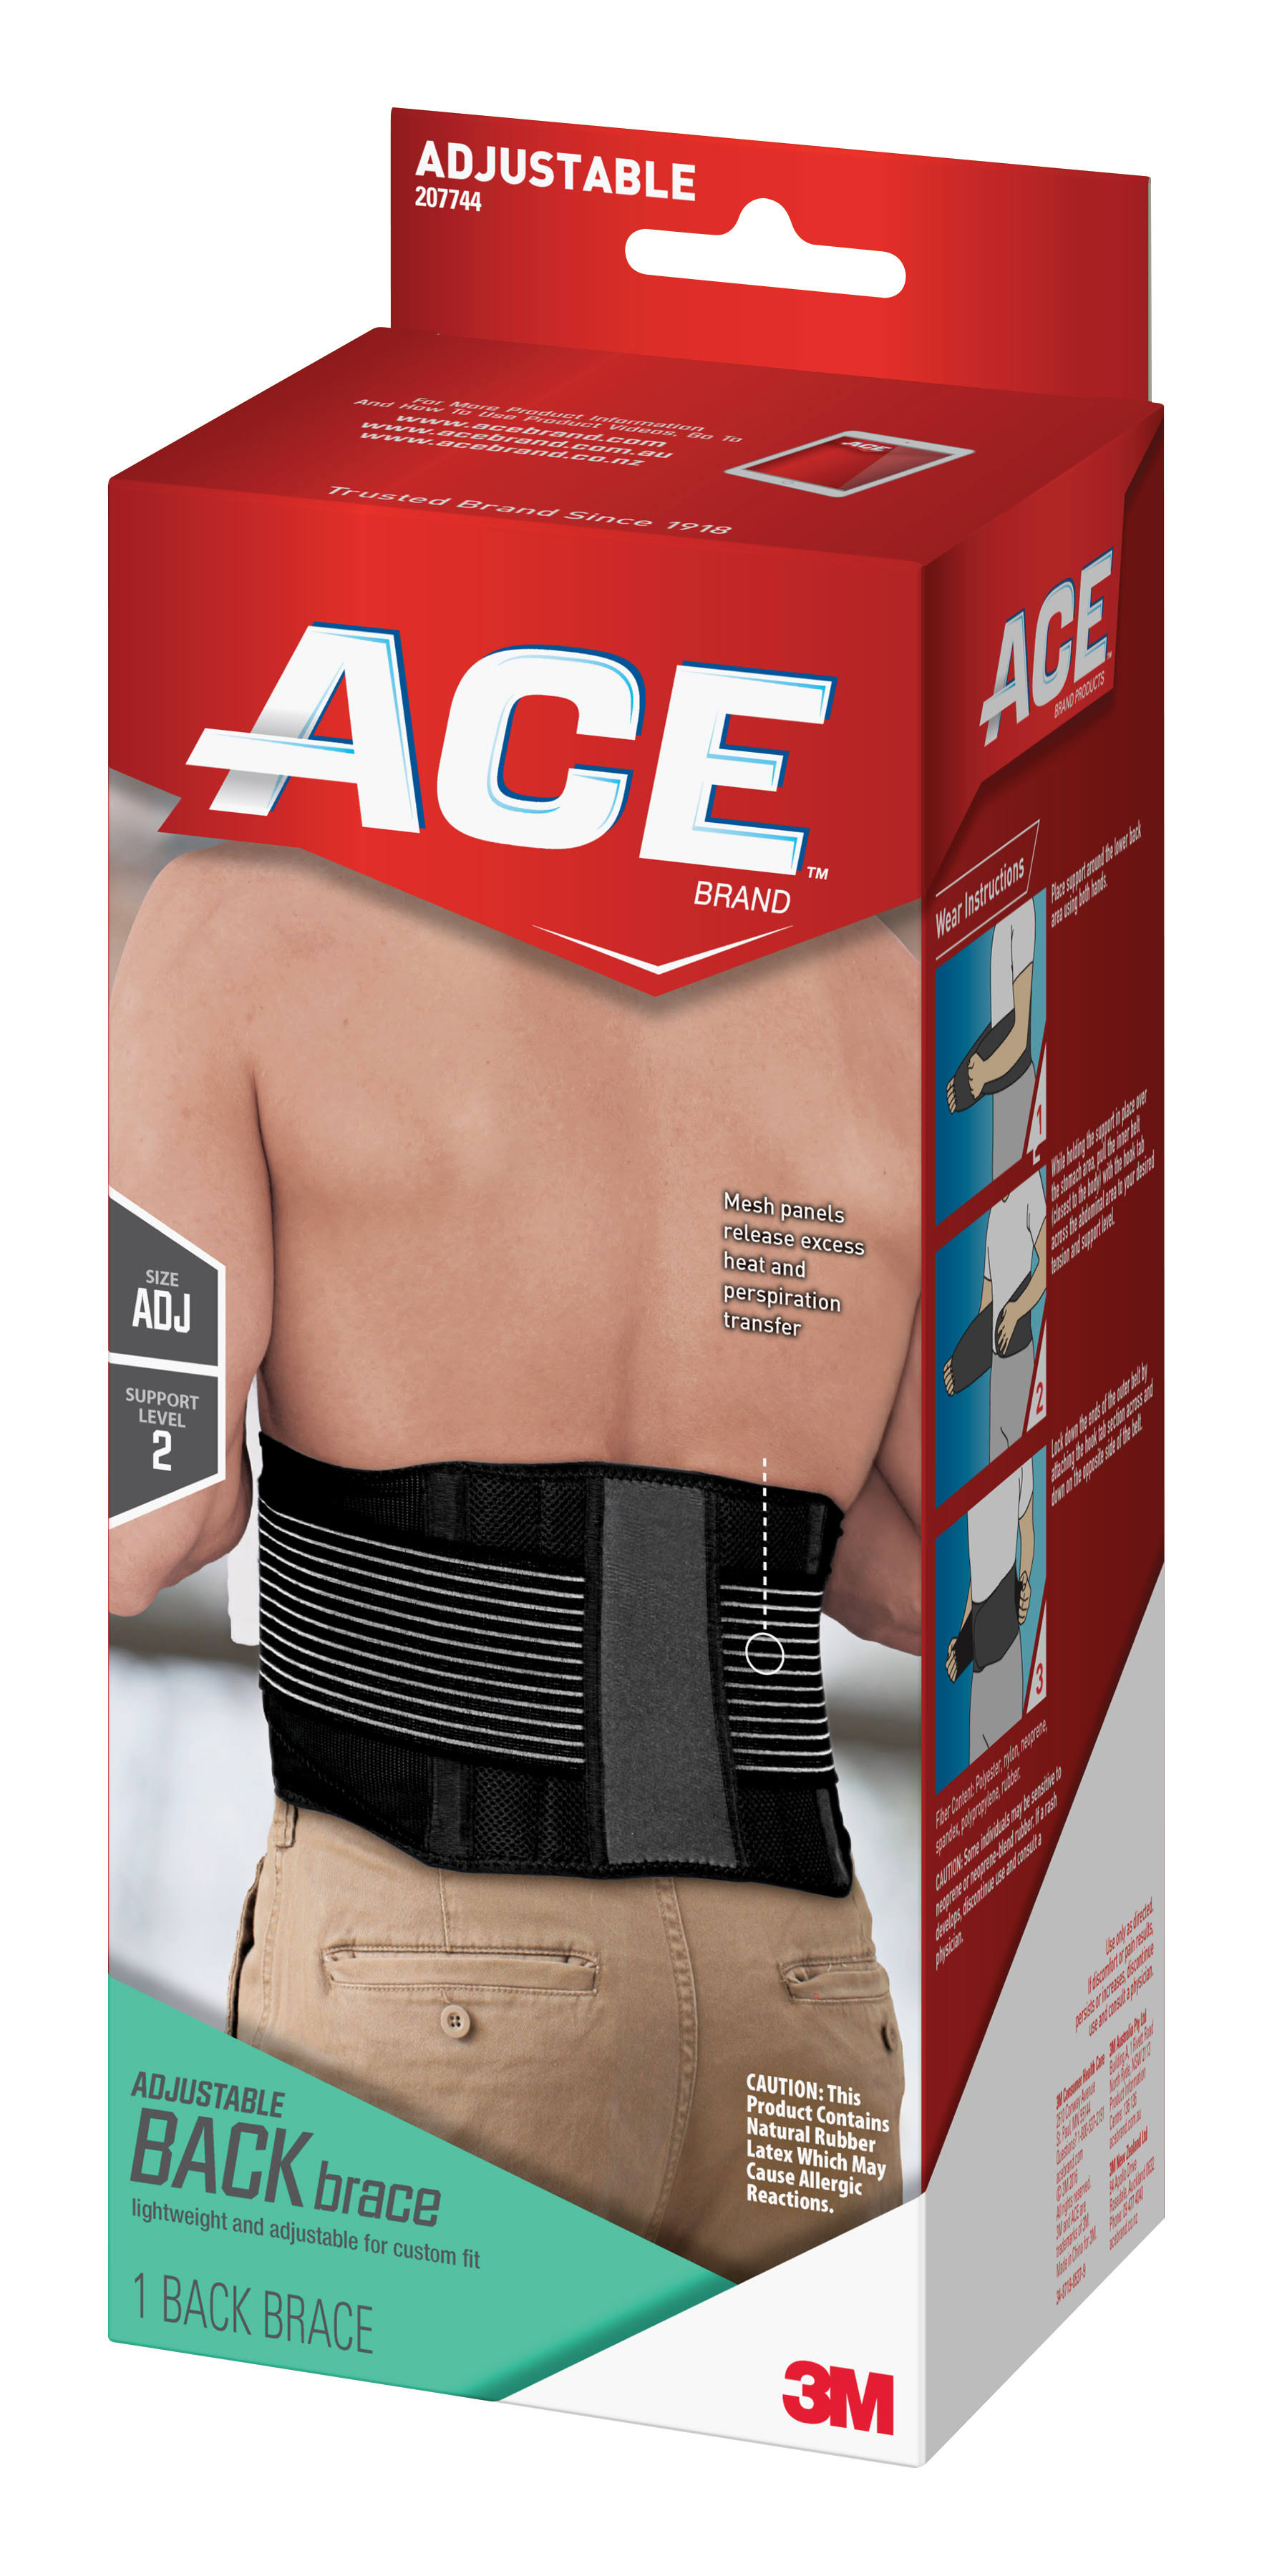 Ace Adjustable Back Brace - 1 Back Brace